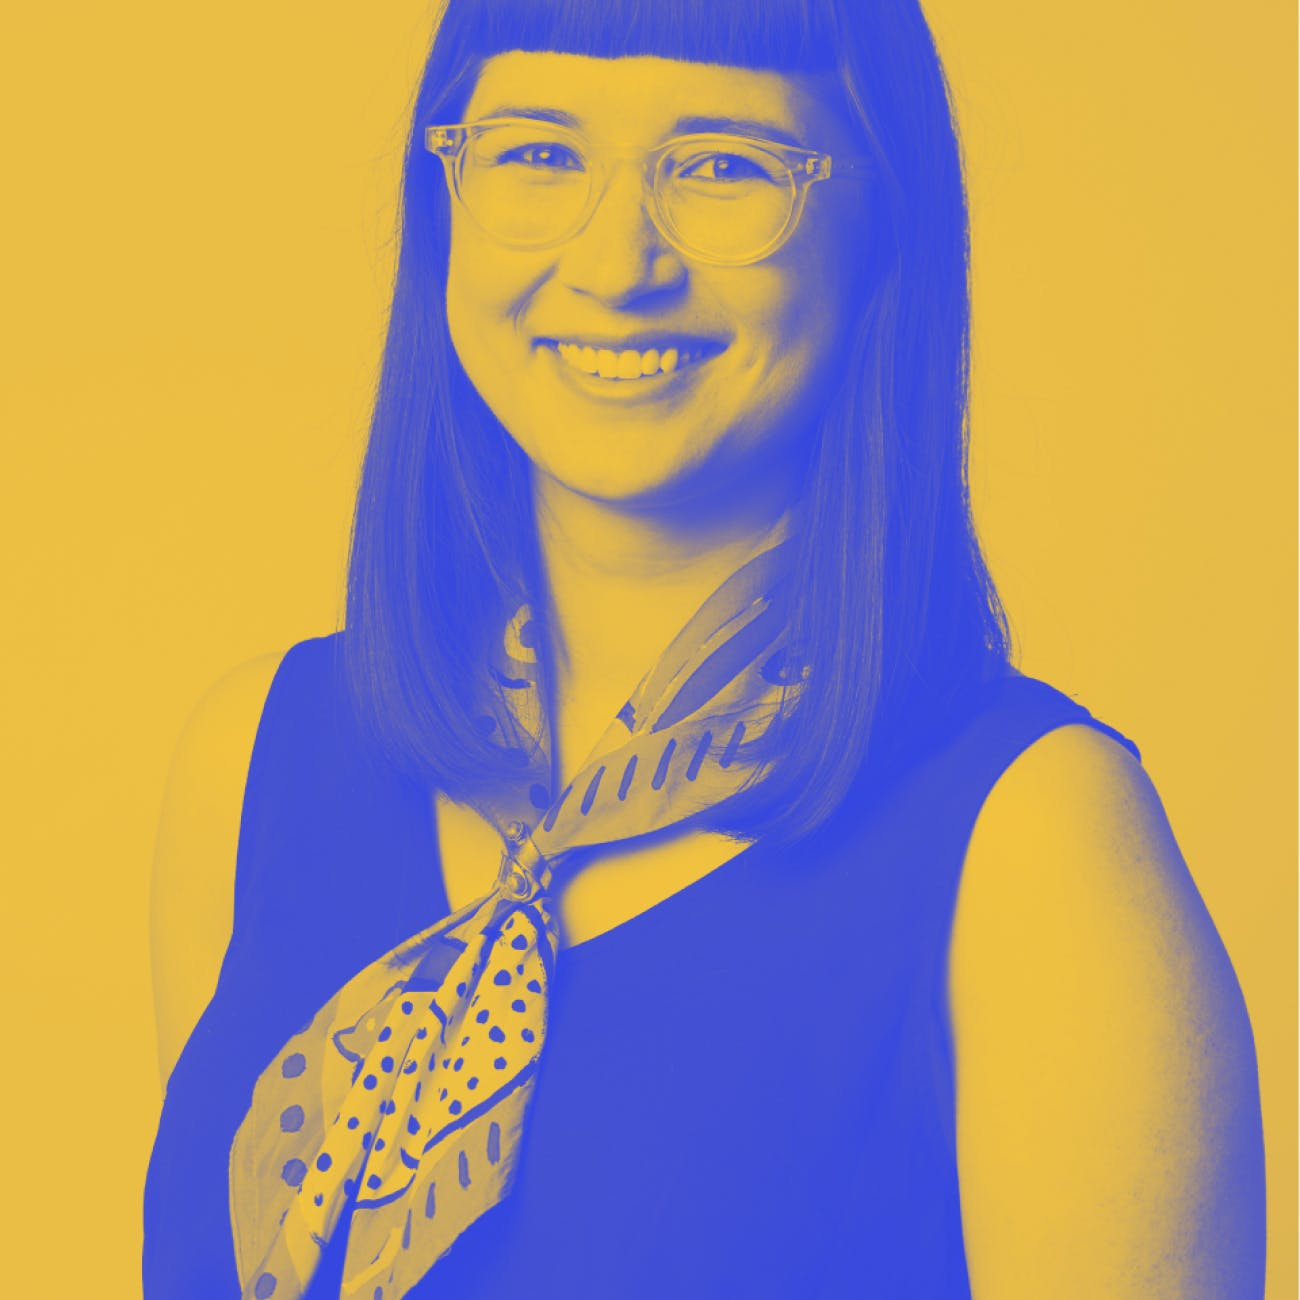 Photo of Libby de Souza with a yellow and blue filter